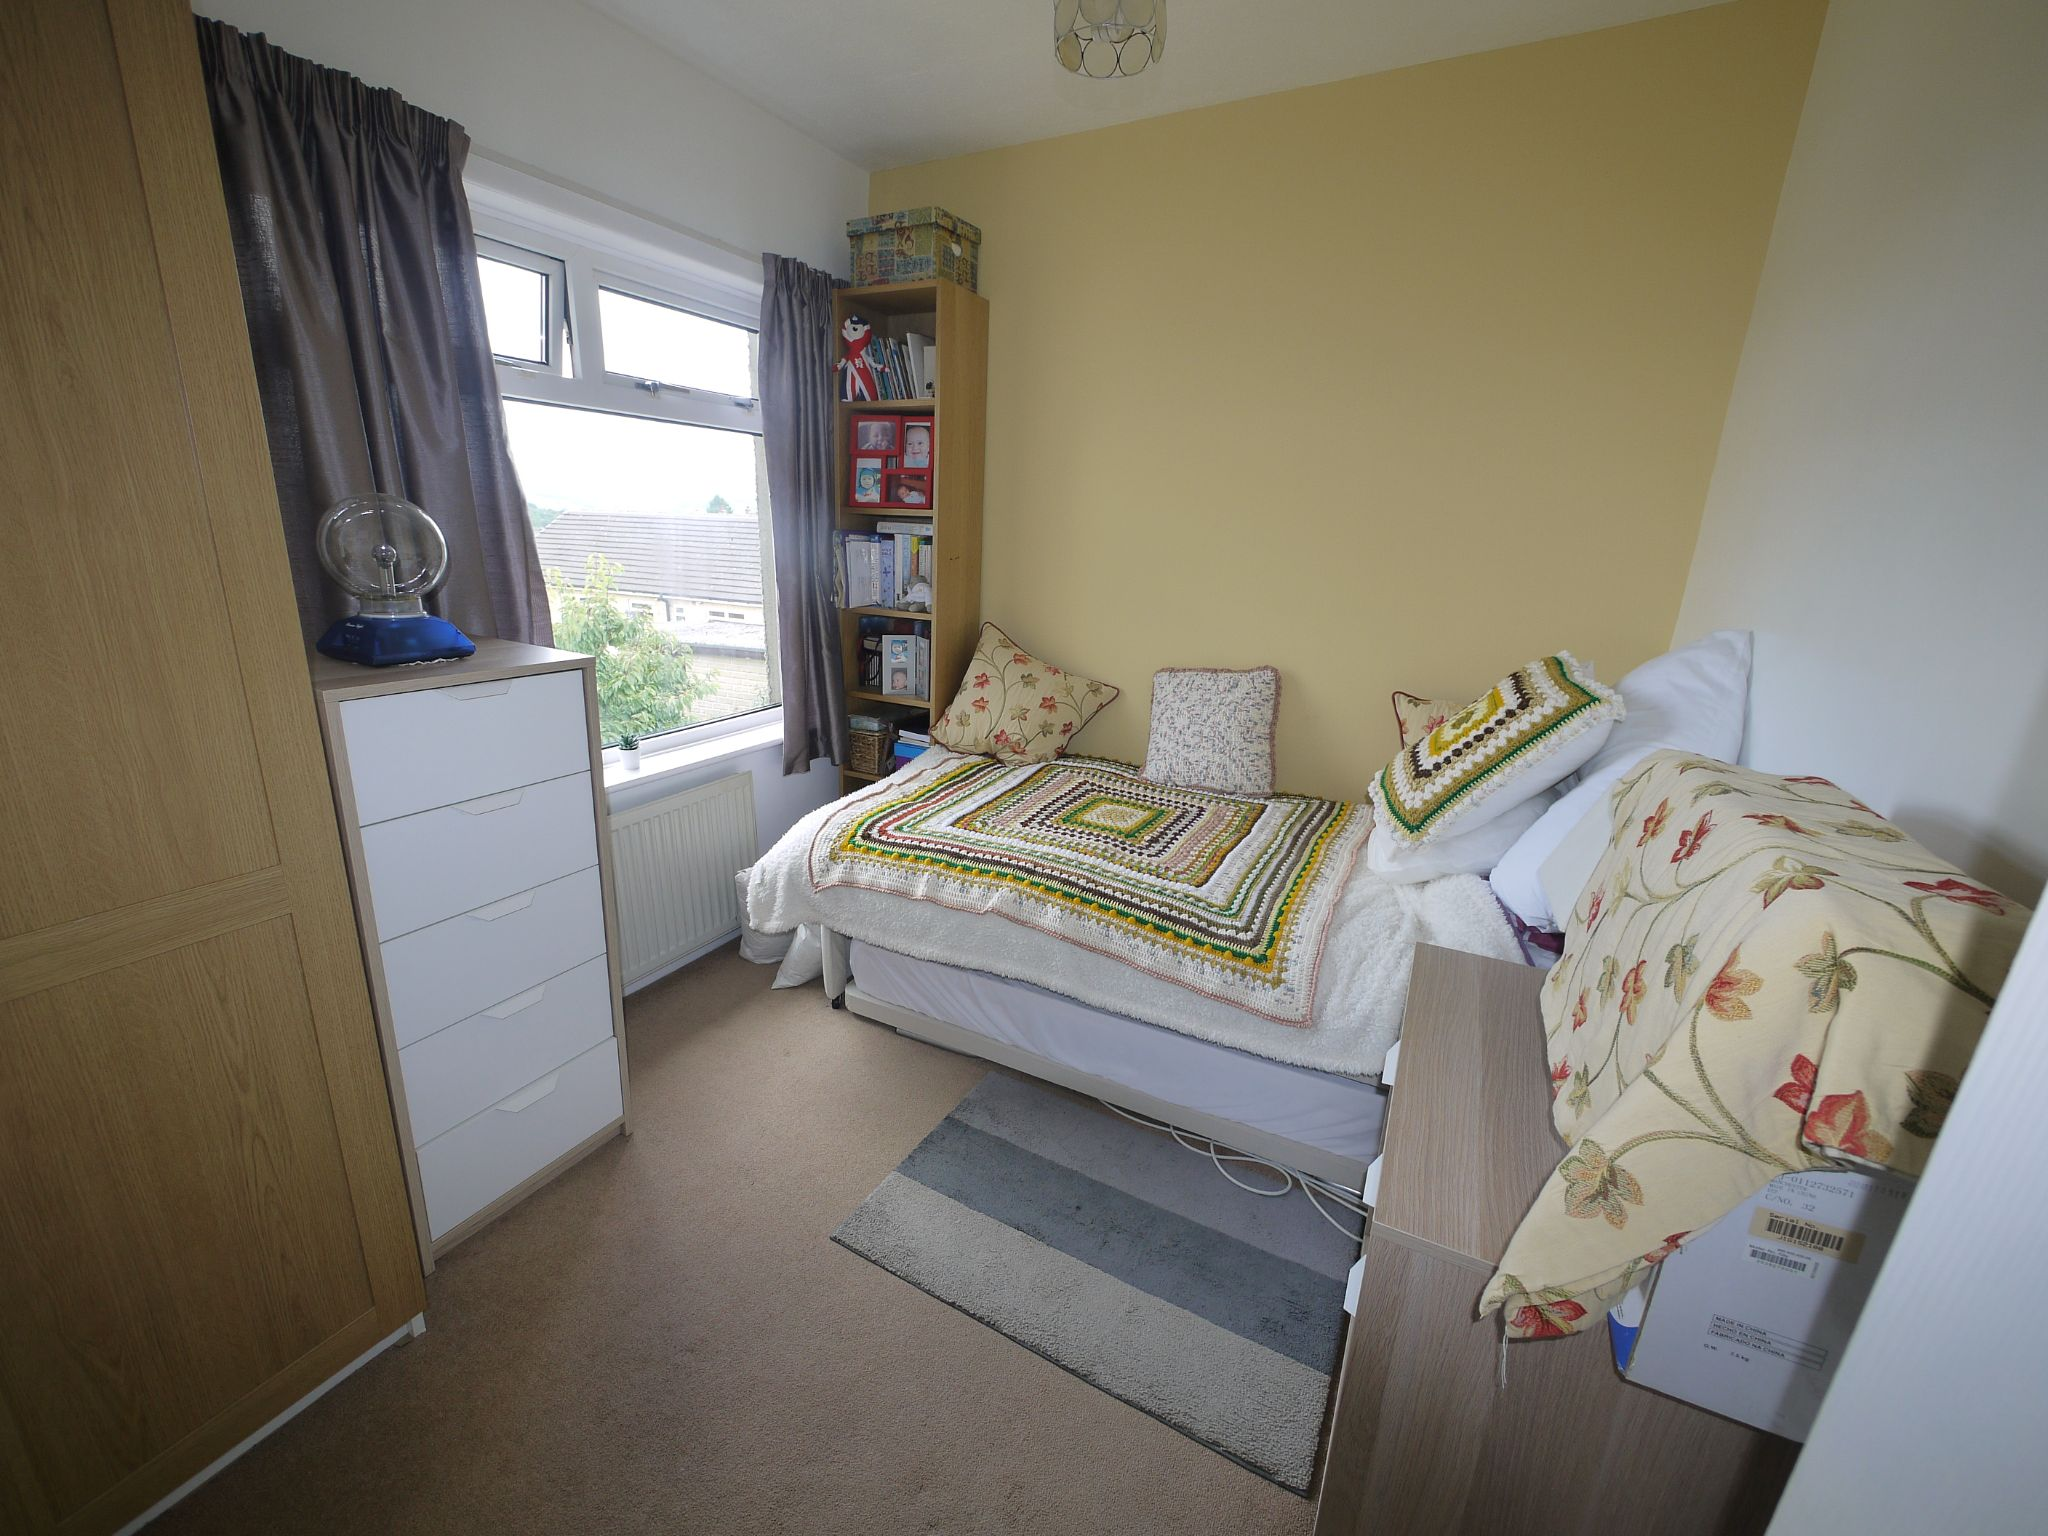 3 bedroom semi-detached house SSTC in Calderdale - Photograph 7.